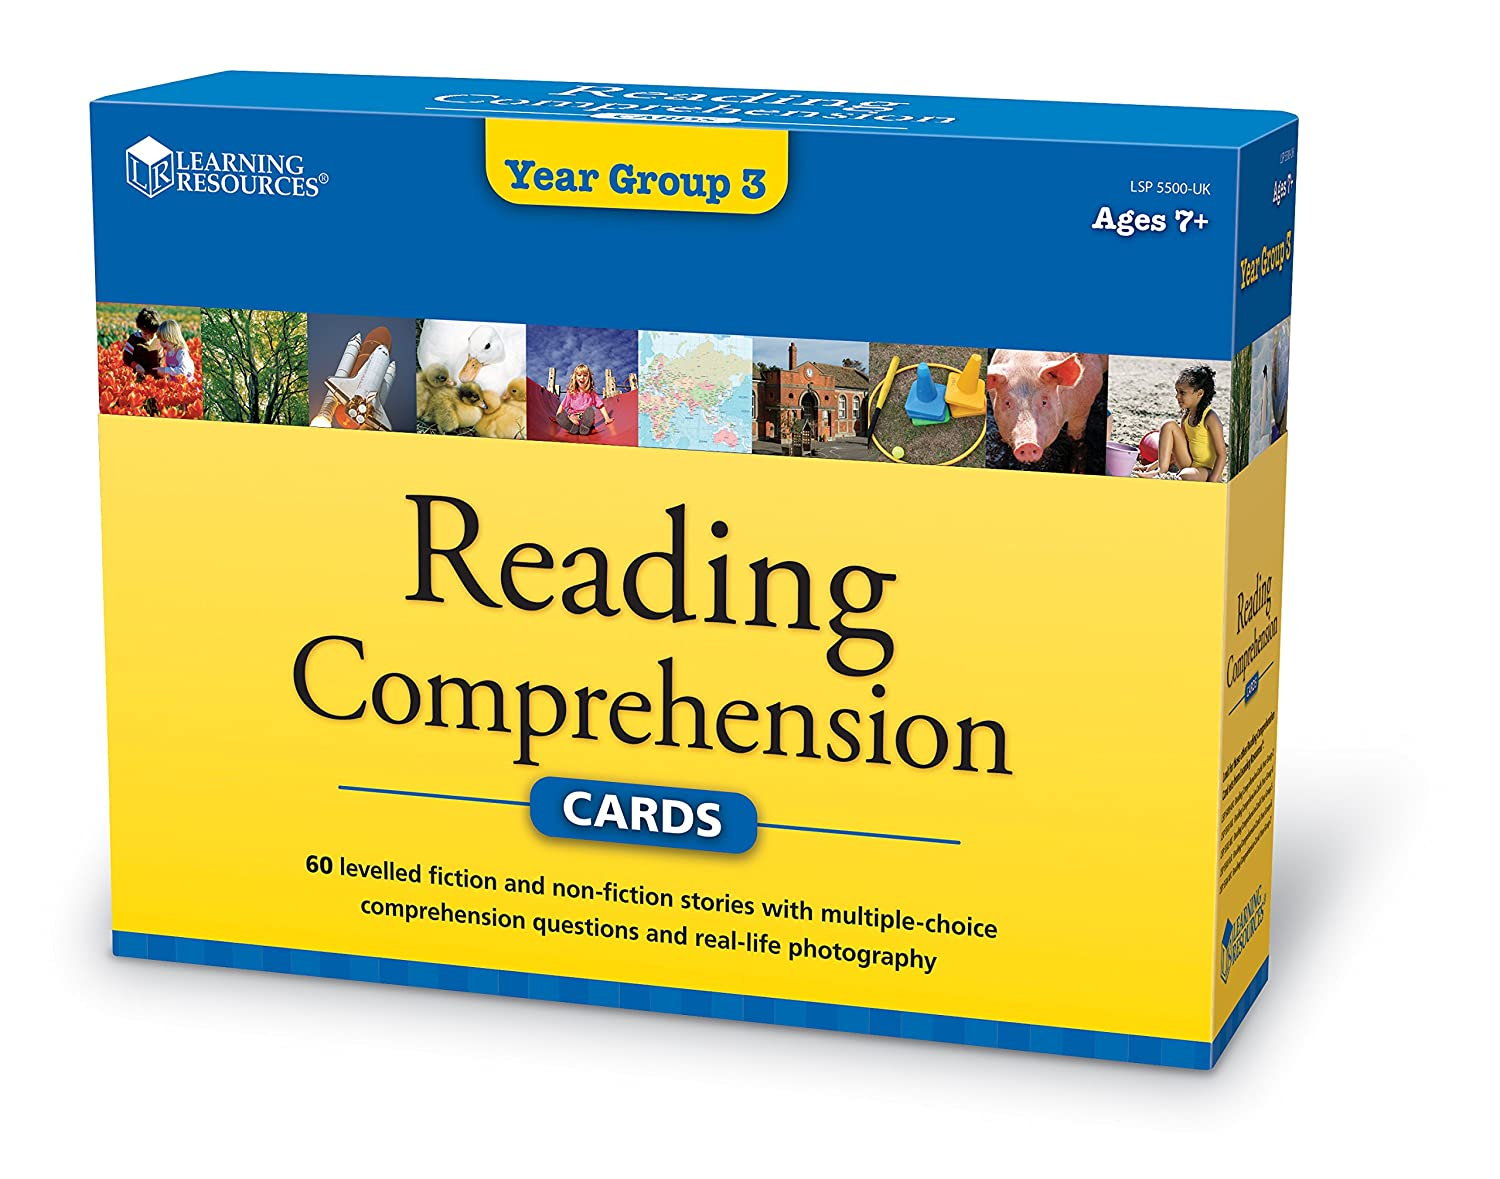 Worksheet Learning Comprehension learning resources reading comprehension cards year group 3 amazon co uk toys games